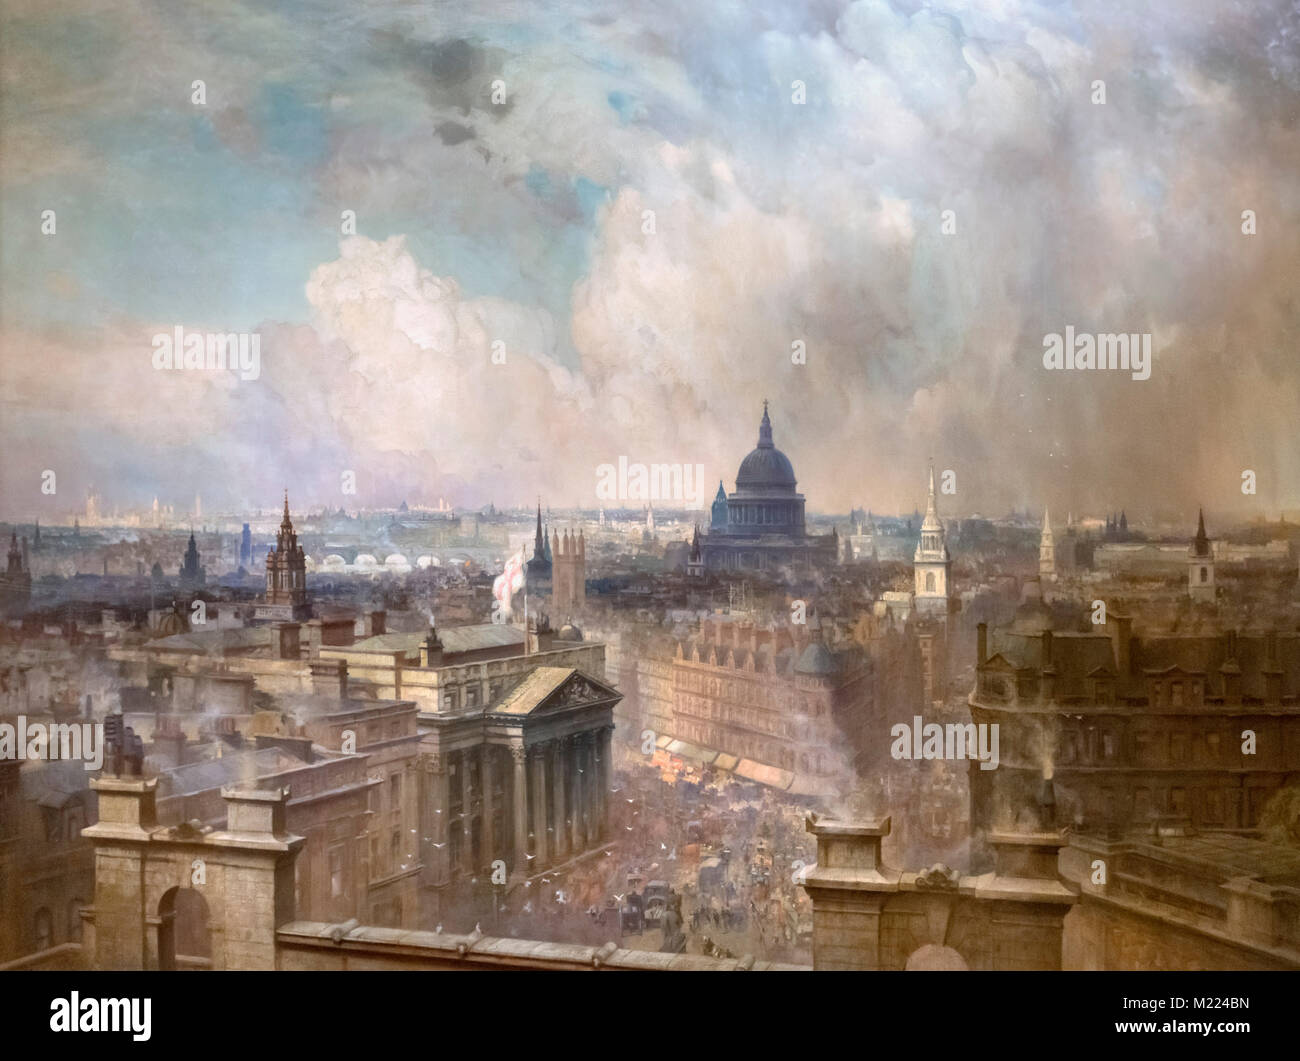 The Heart of the Empire by Niels Moeller Lund (1863-1916), oil on canvas, 1904. The painting shows the skyline of - Stock Image